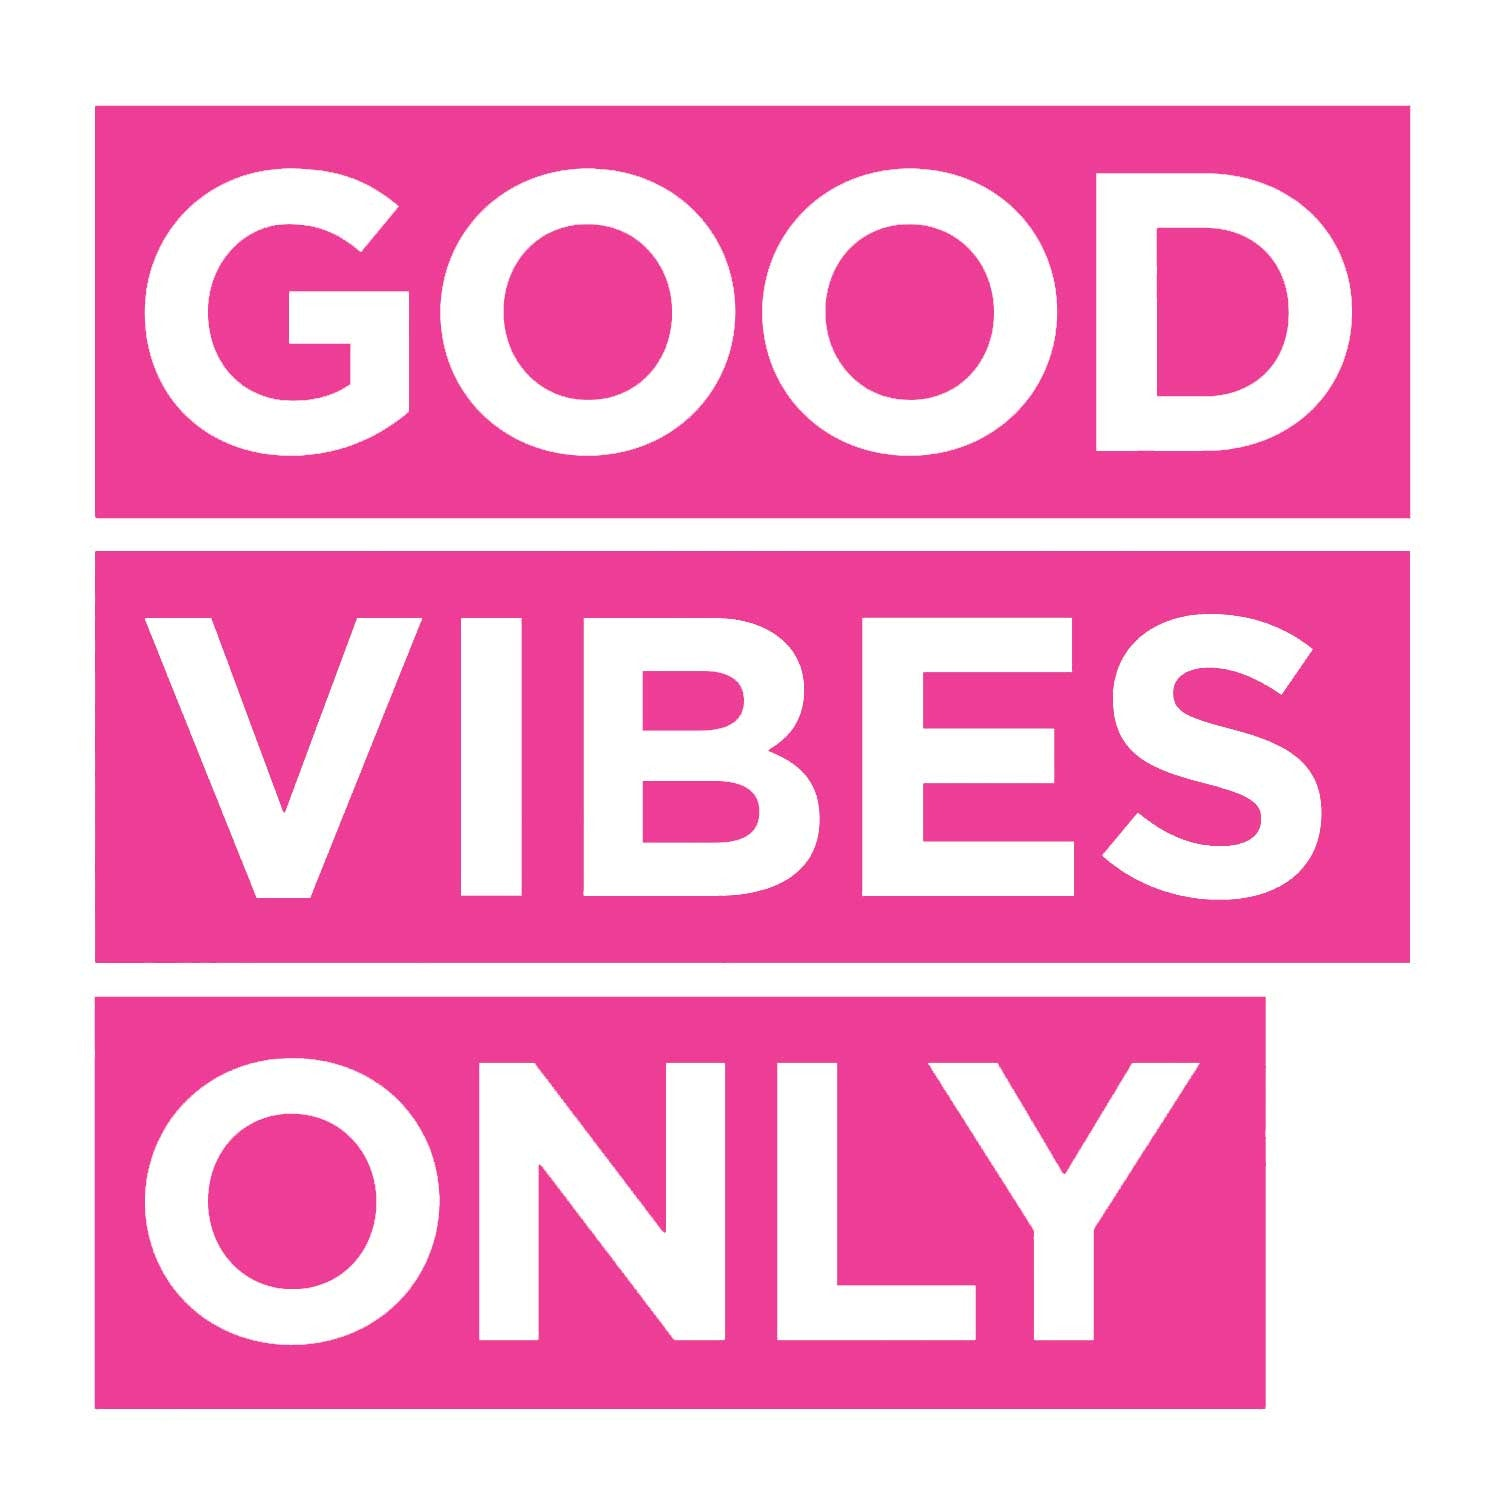 Good Vibes Only Decal - Pink Small